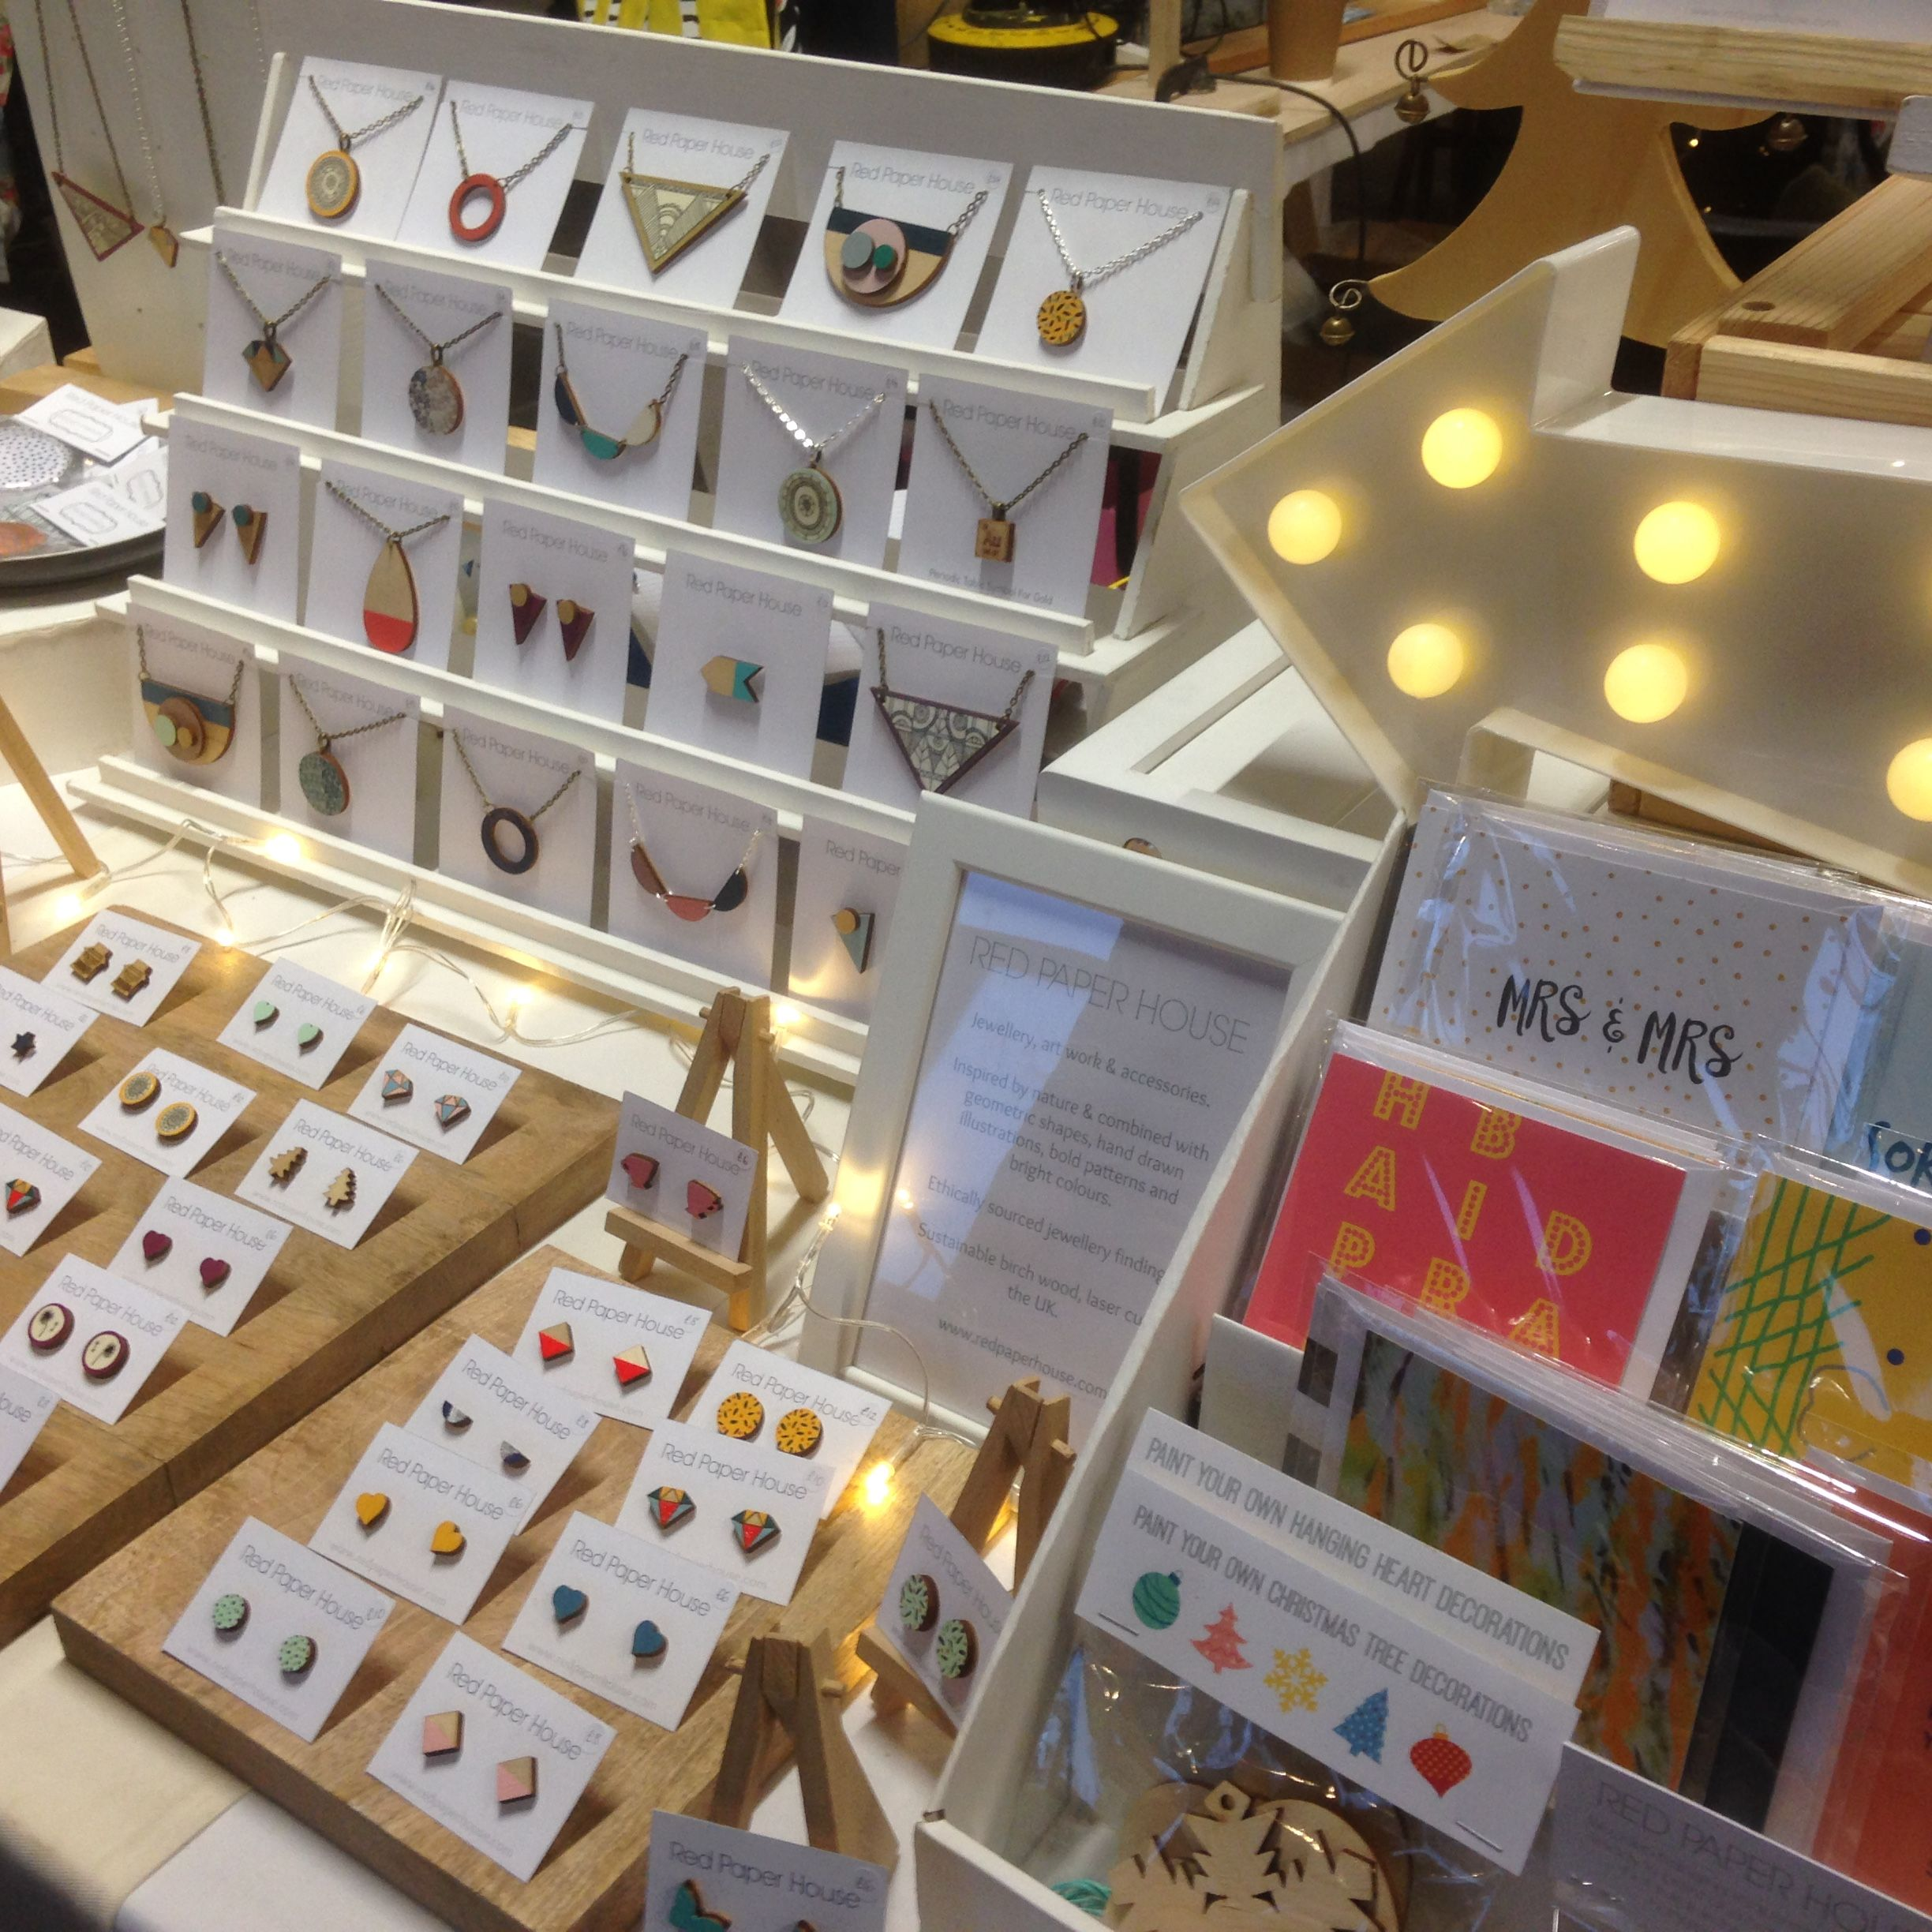 Pin by red paper house on red paper house craft fair displays red paper house at the hepworth christmas market wakefield november 2016 jeuxipadfo Image collections